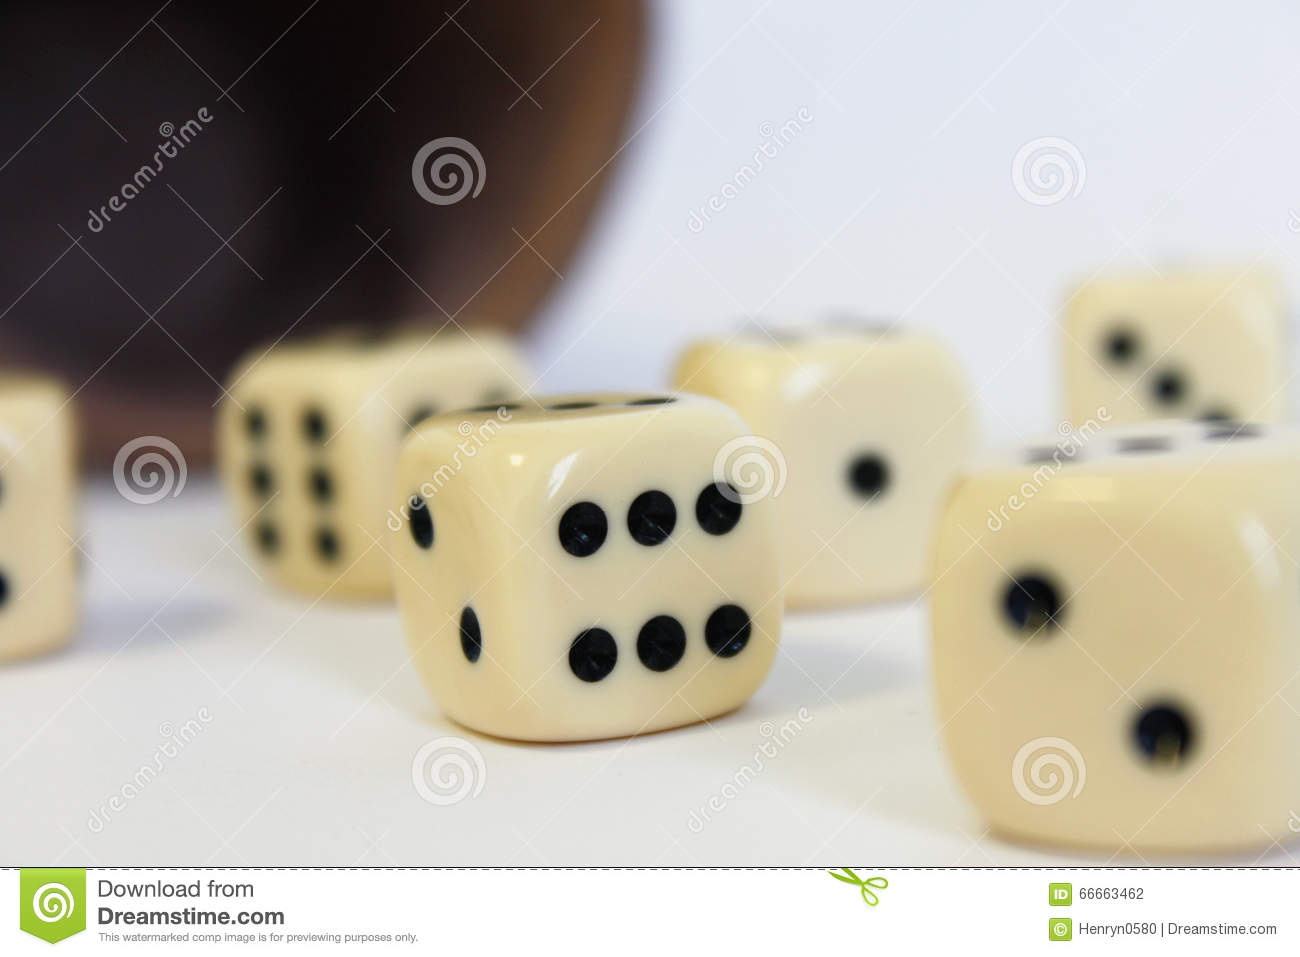 How to Play Lucky Numbers (Dice) forecast